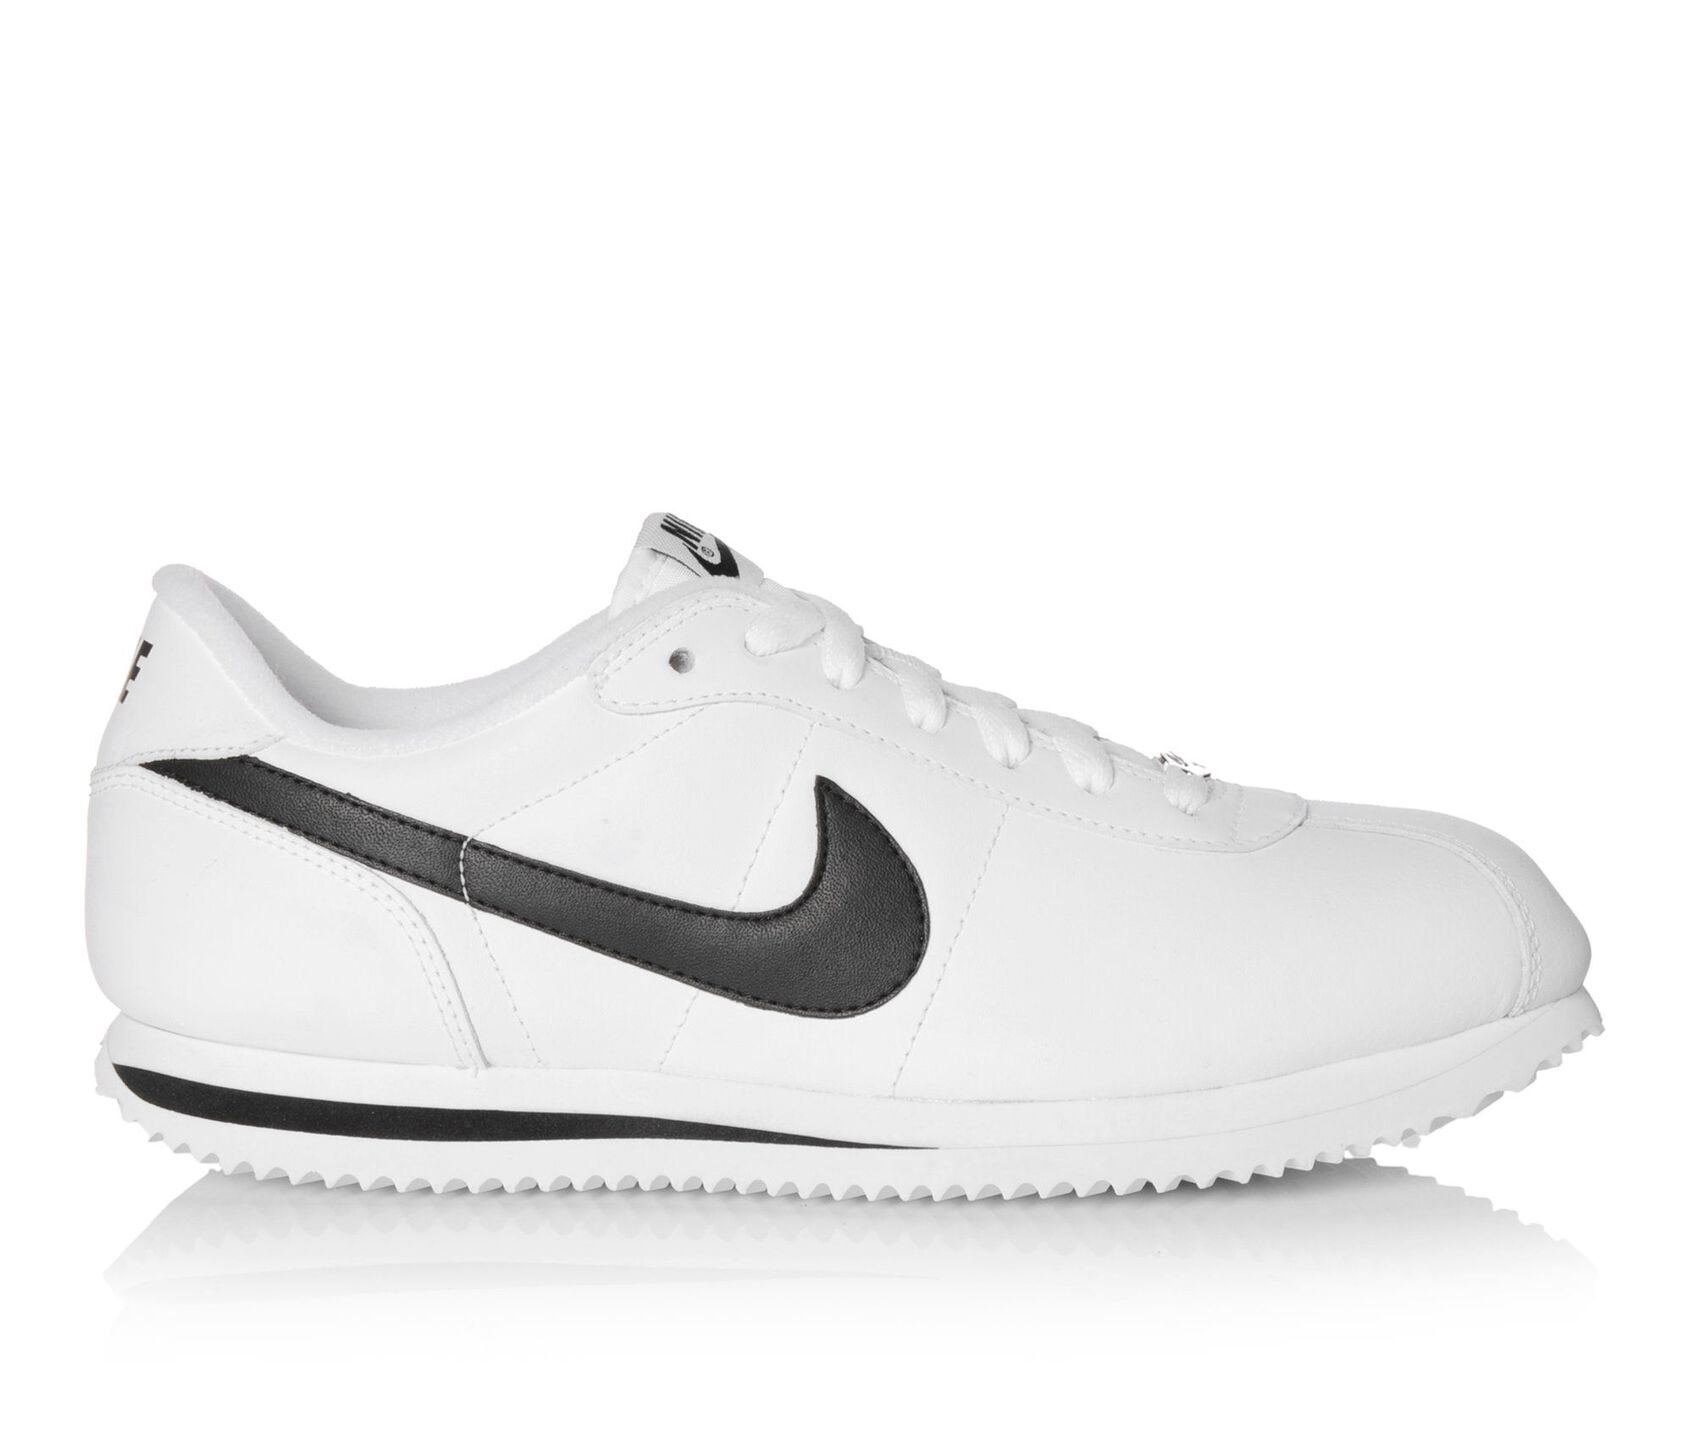 san francisco 54ae5 aa889 ... Nike Cortez Basic Leather Sneakers. Previous